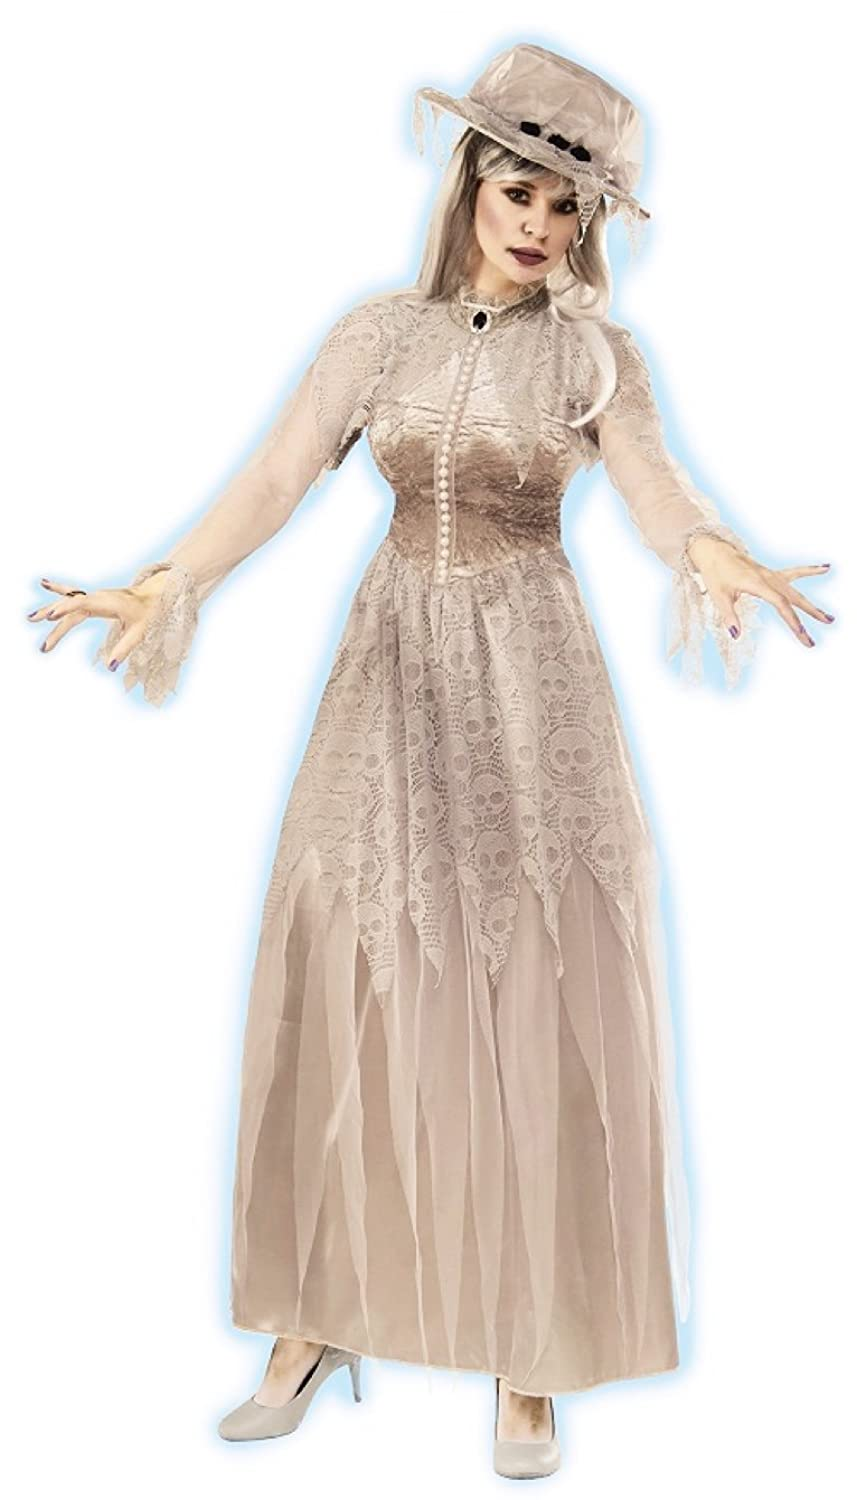 Victorian Dresses, Clothing: Patterns, Costumes, Custom Dresses Victorian Ghost Costume $39.56 AT vintagedancer.com